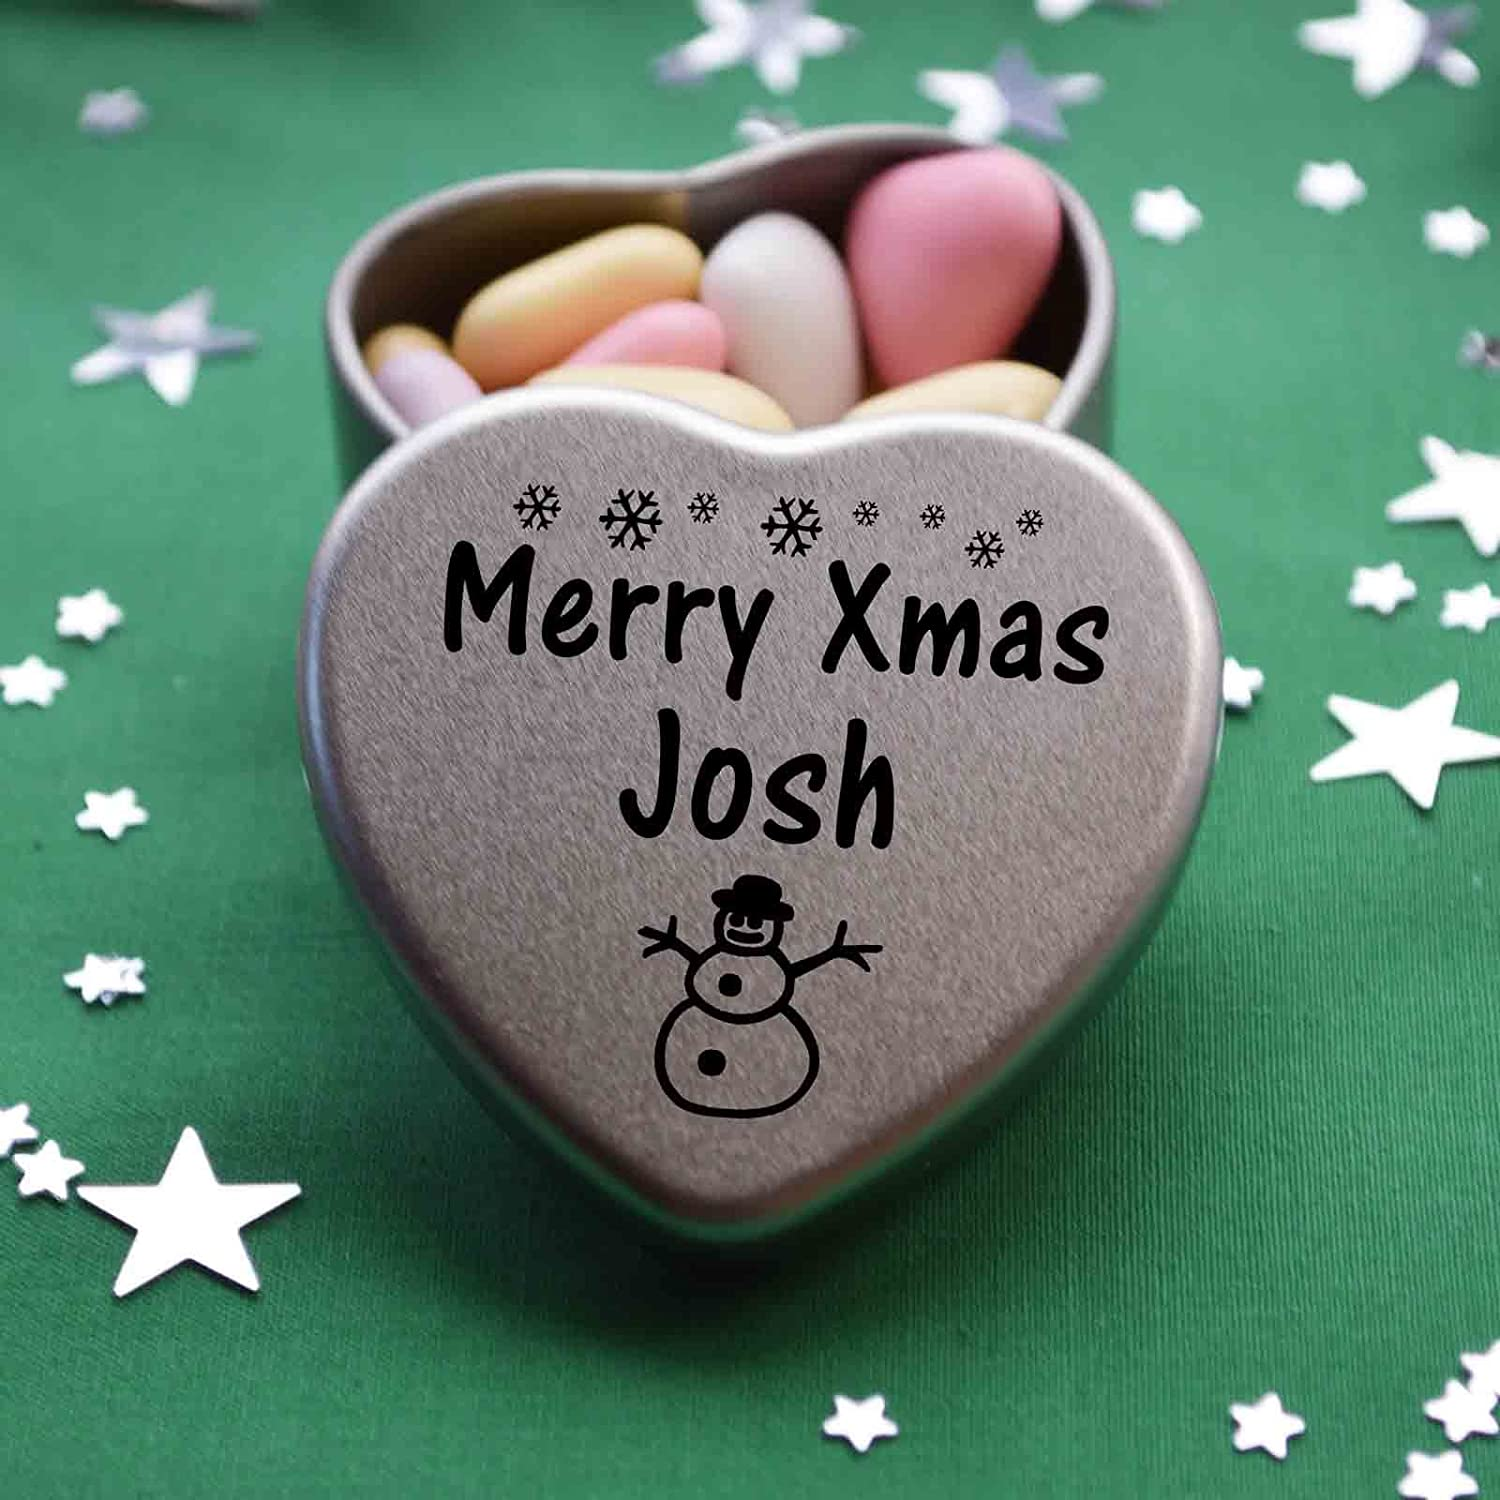 Merry Xmas Josh Mini Heart Gift Tin with Chocolates Fits Beautifully in the palm of your hand. Great Christmas Present for Josh Makes the perfect Stocking Filler or Card alternative. Tin Dimensions 45mmx45mmx20mm. Three designs Available, Father Christmas